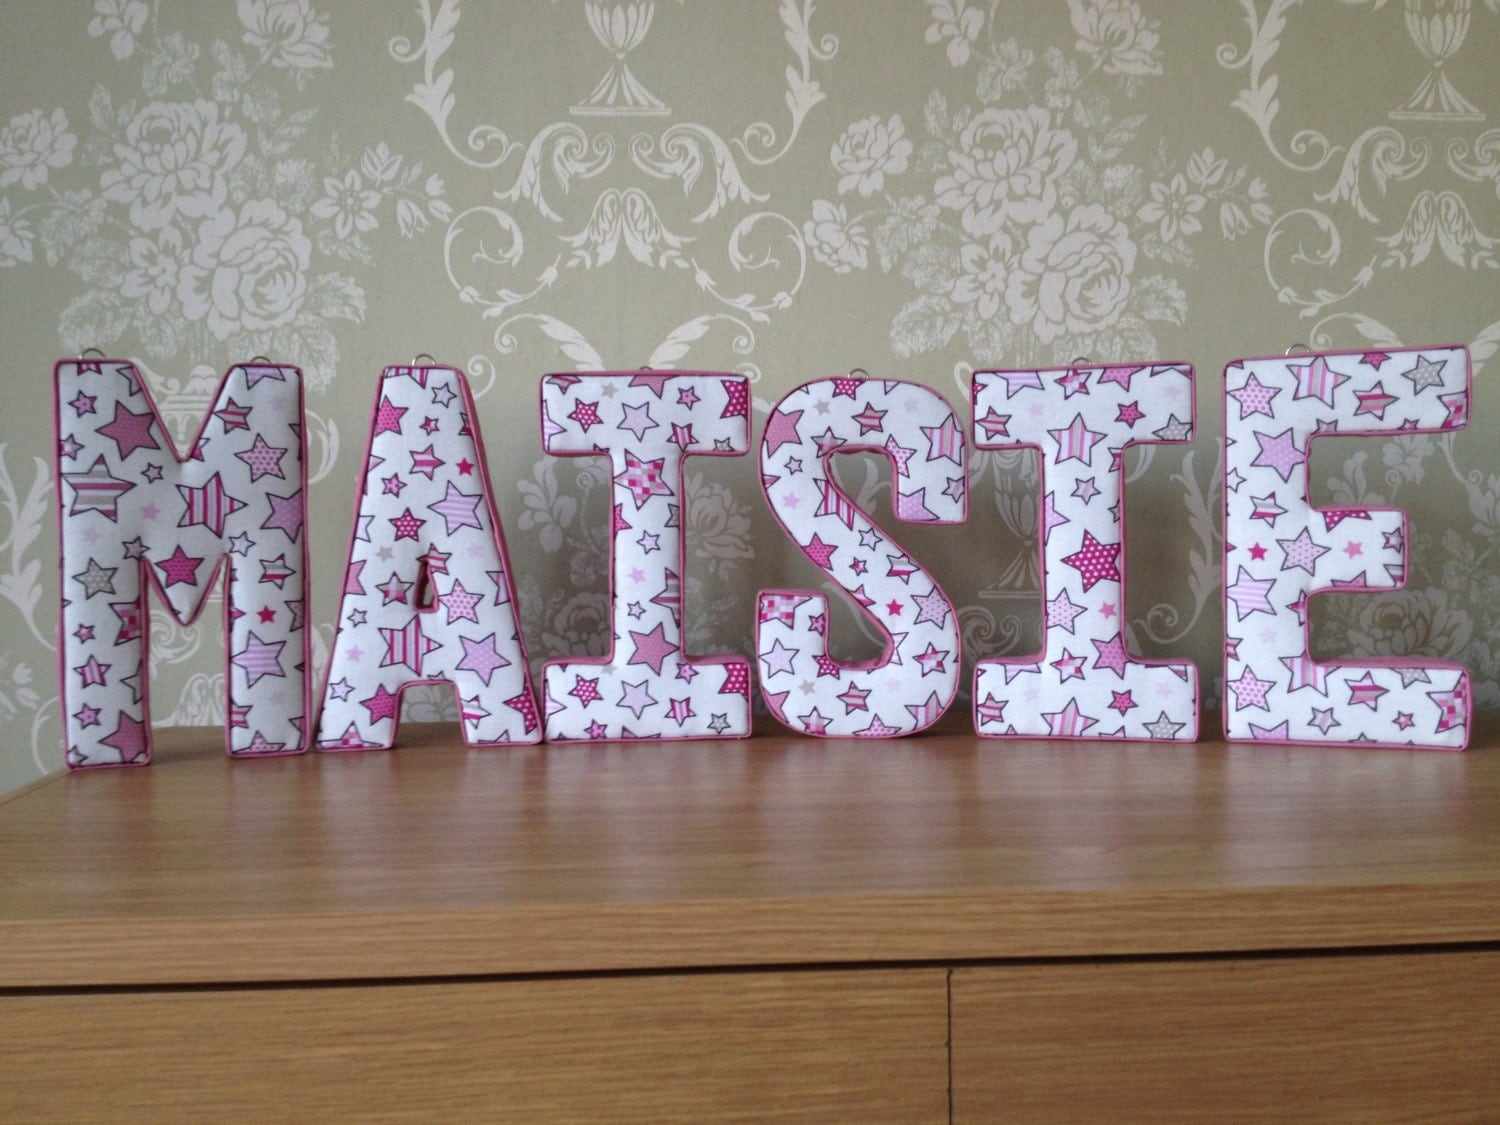 Fabric letters wall decor : Fabric letters d wall art ideal nursery or